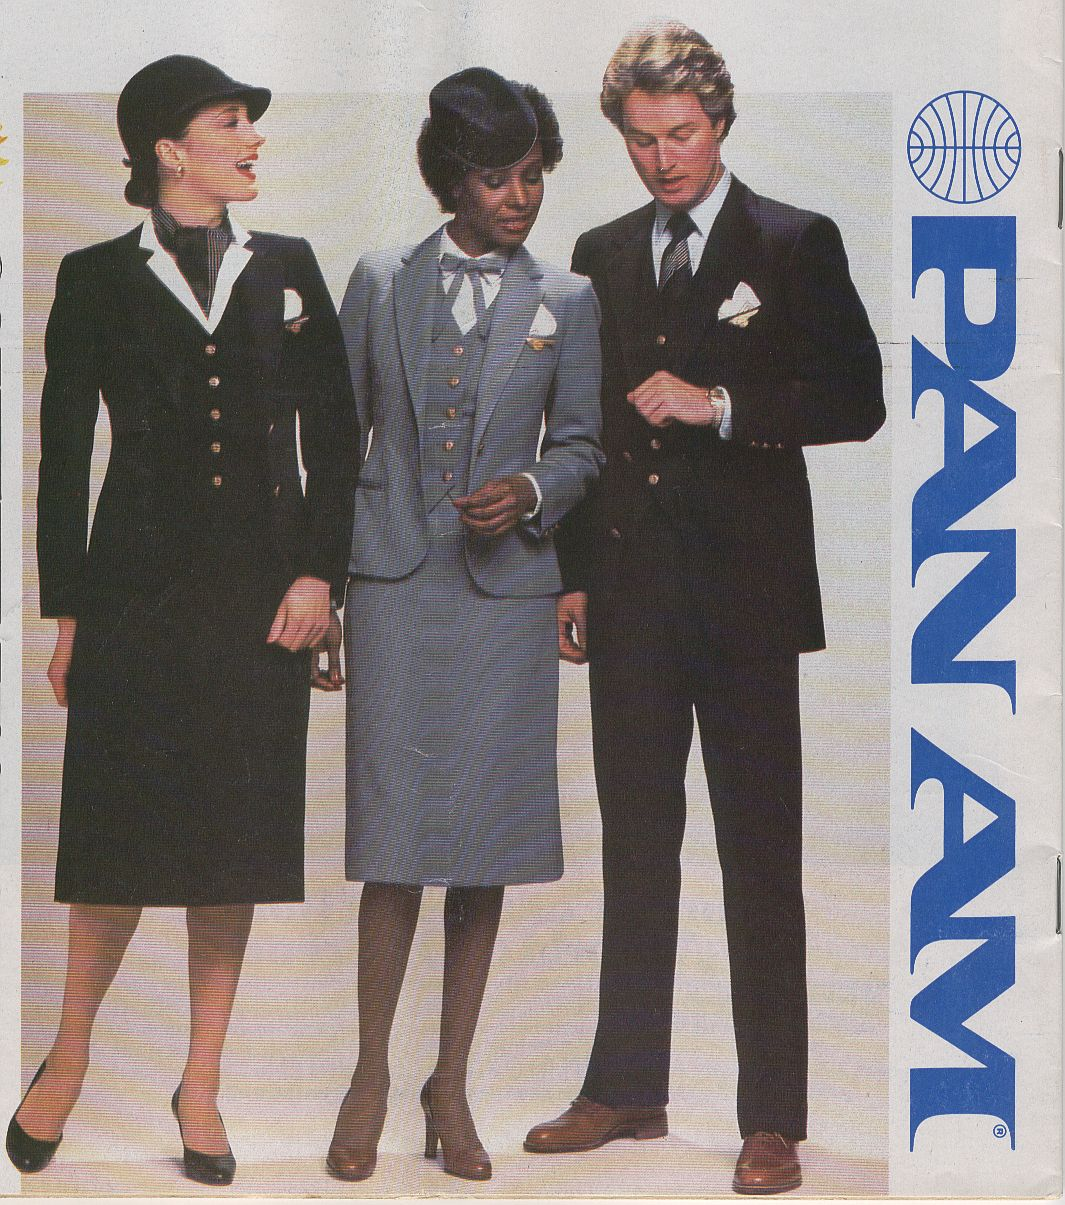 In July of 1980 Pan Am introduced new flight attendant uniforms designed fy popular 1980s designer Adolfo.  The uniform came in both navy & powder blue.  The uniform would be modified in the late 1980s with different blouses, ties, scarves and aprons.  At that time the powder blue option was discontinued.